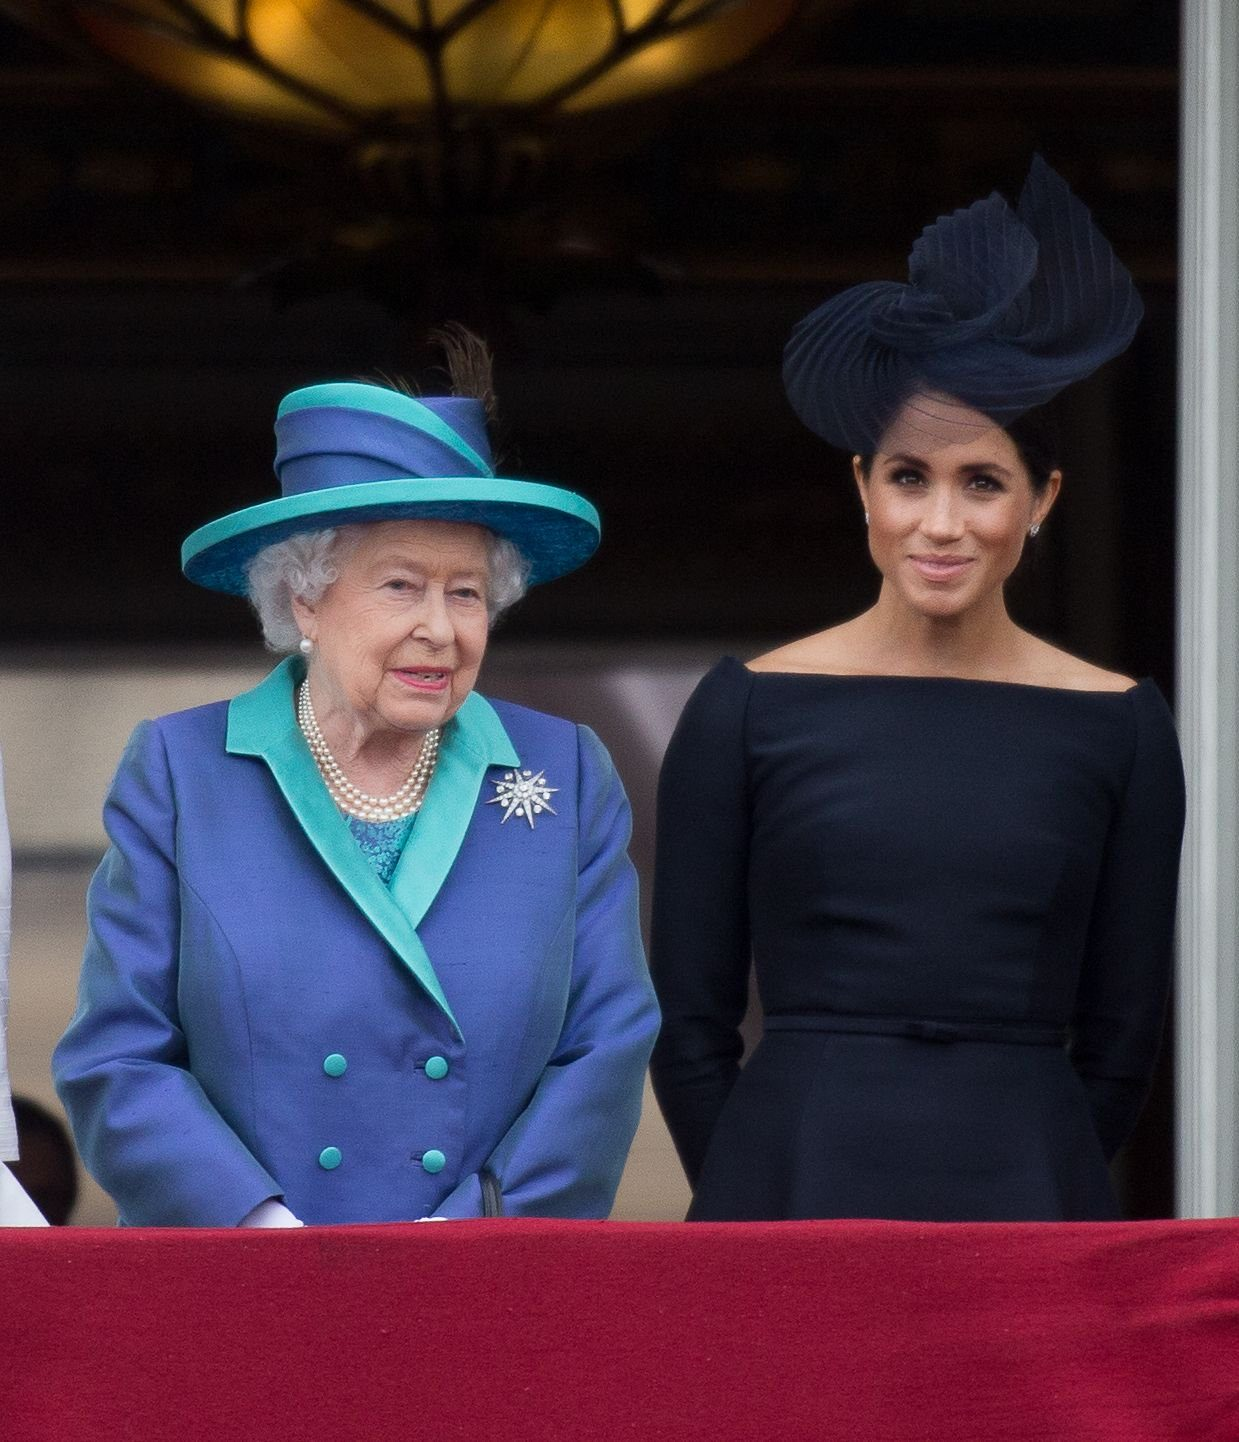 Queen Elizabeth II, Meghan Duchess of Sussex on the balcony of Buckingham Palace